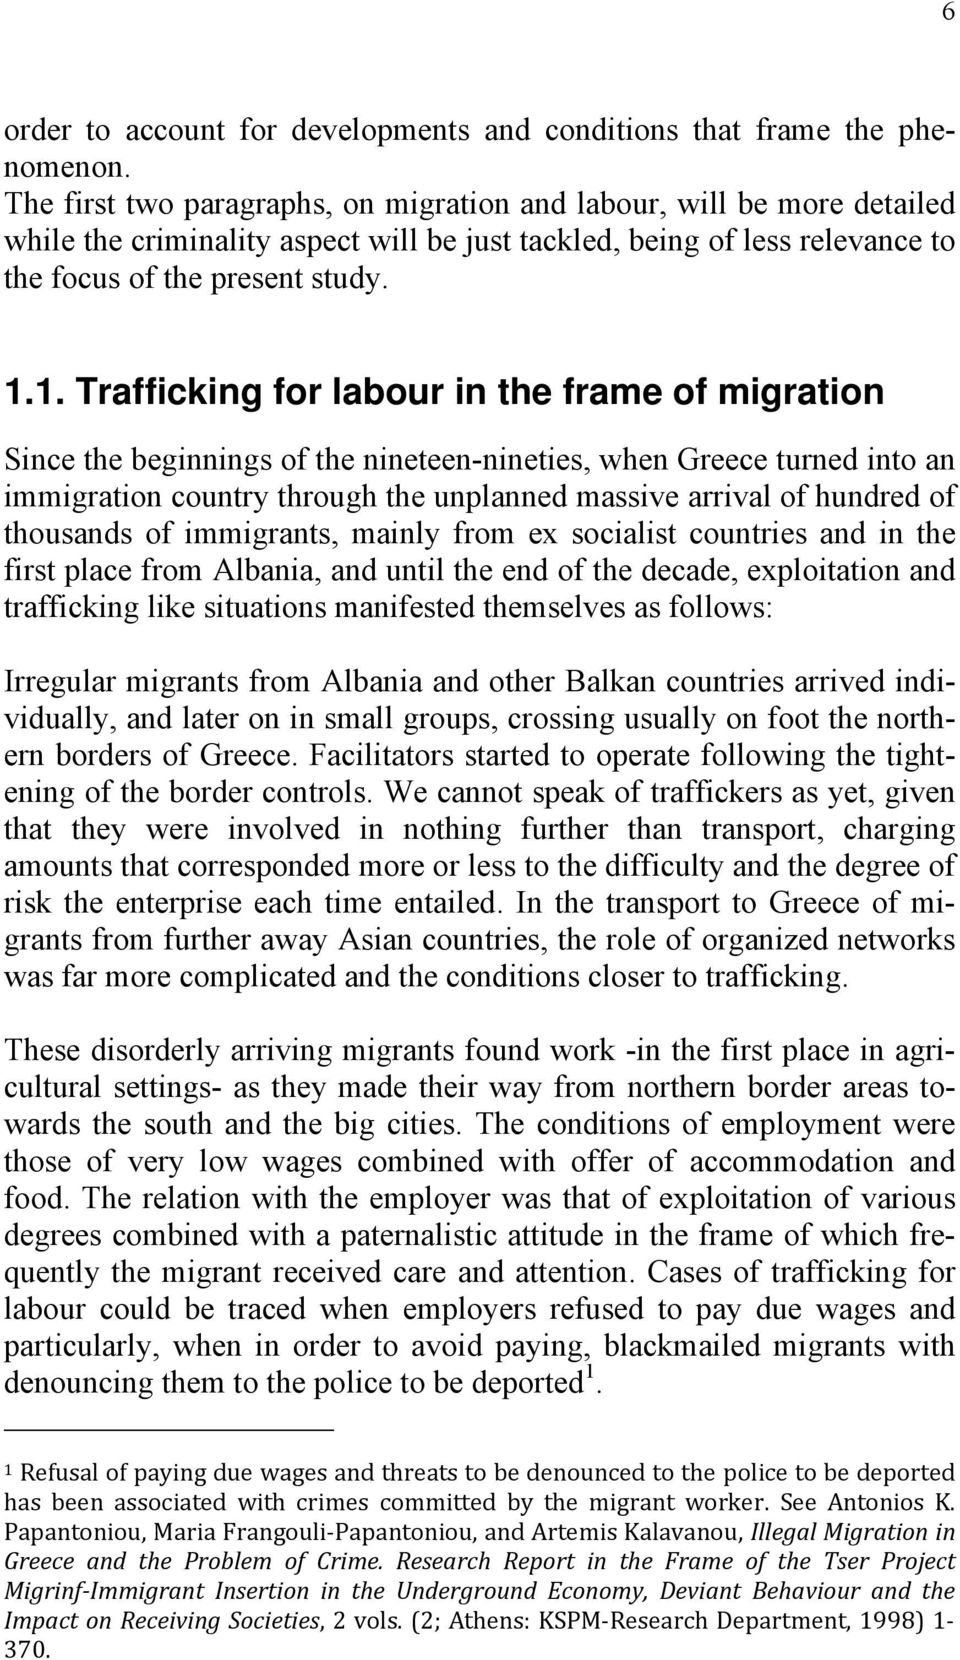 1. Trafficking for labour in the frame of migration Since the beginnings of the nineteen-nineties, when Greece turned into an immigration country through the unplanned massive arrival of hundred of